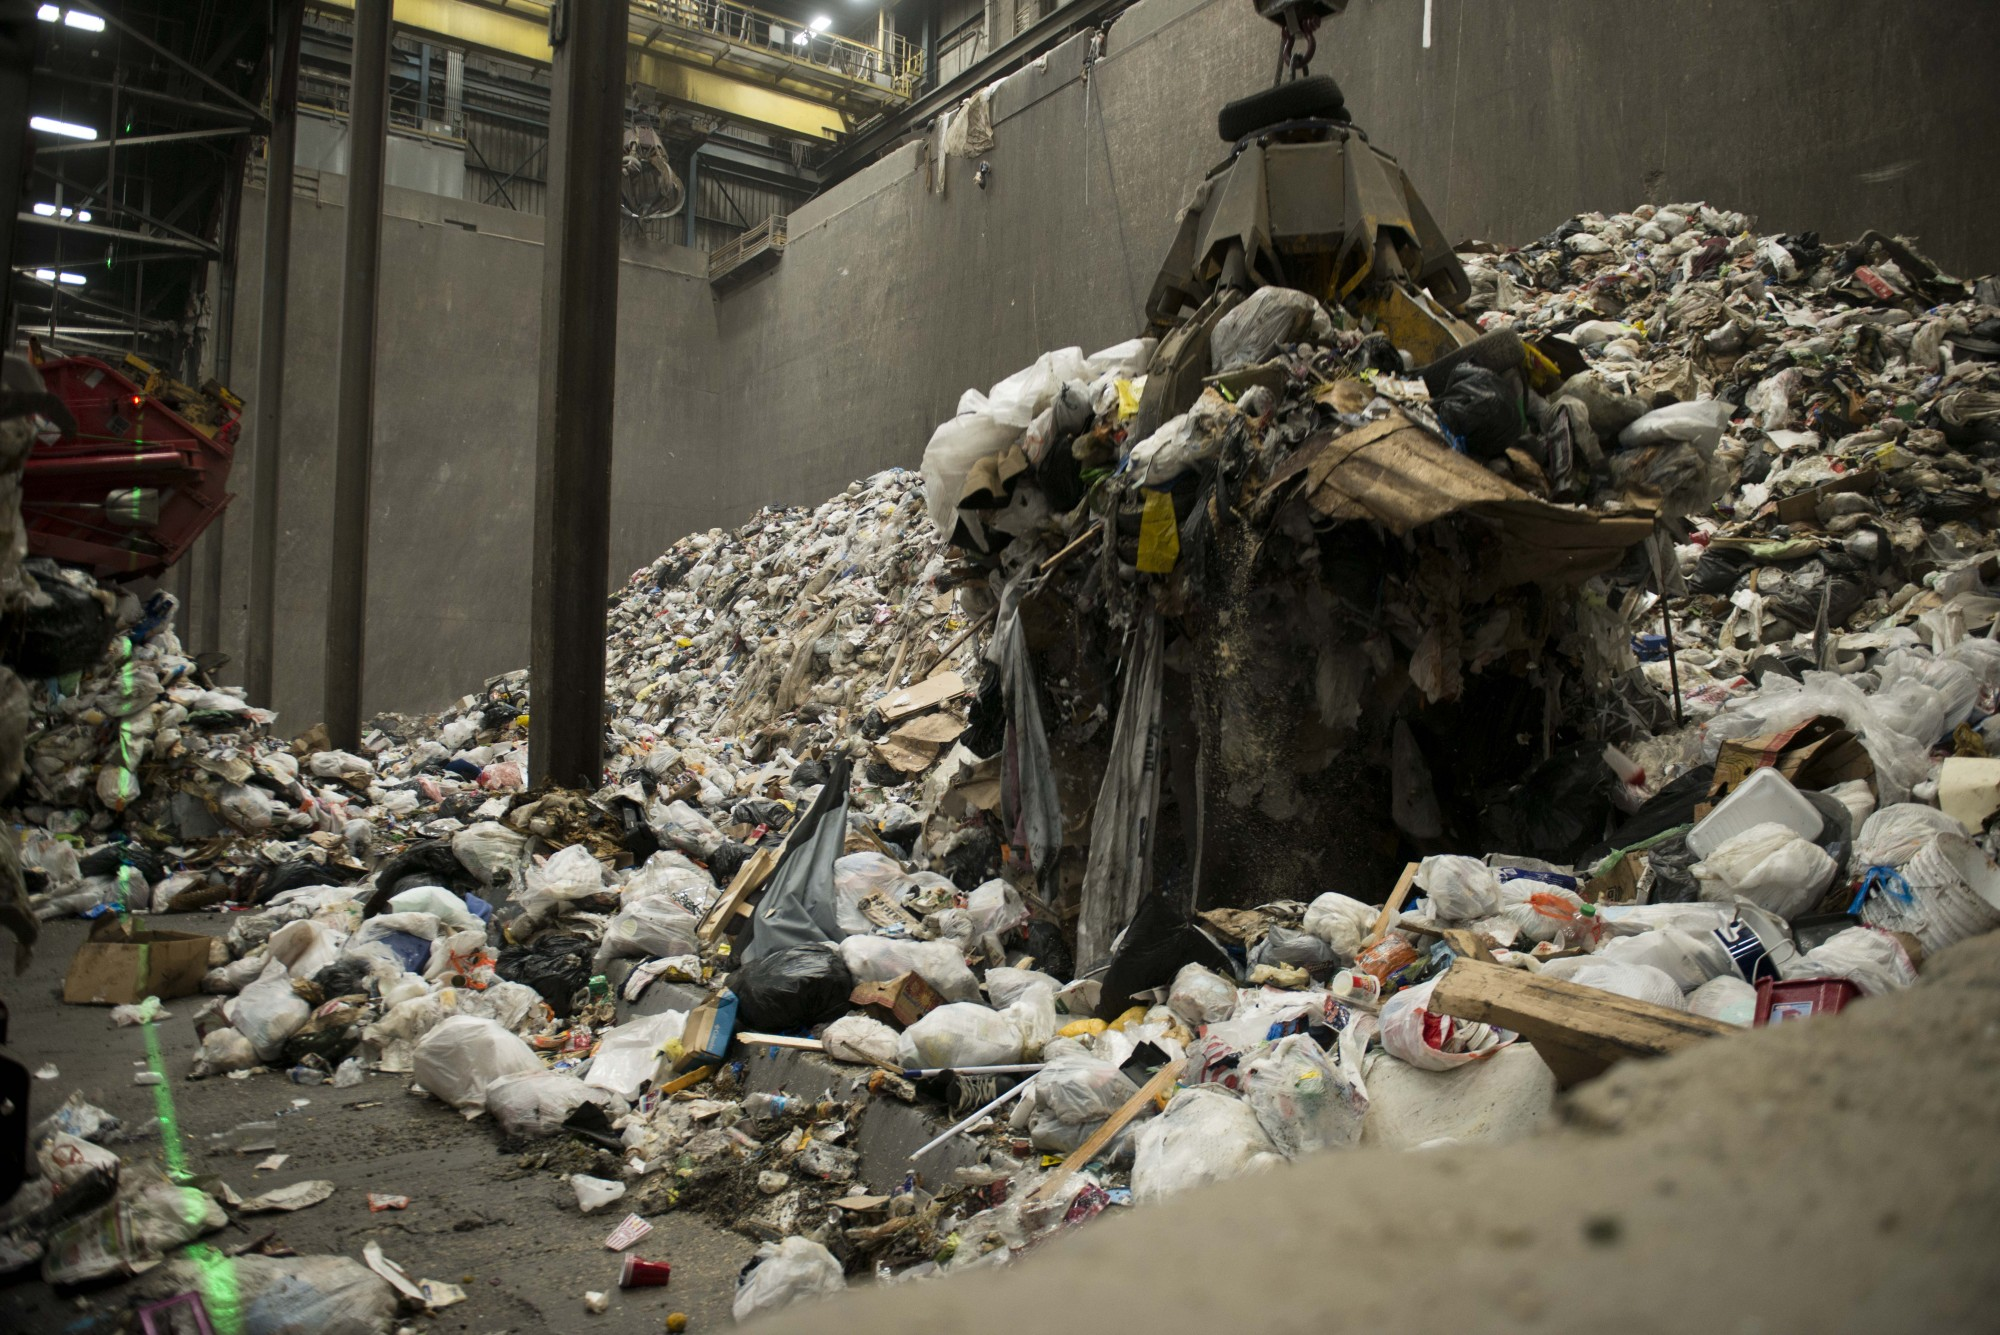 A crane picks up trash to be distributed in bins and transported to the incinerator at the Hennepin Energy Recovery Center in Minneapolis on Wednesday, Dec. 4.